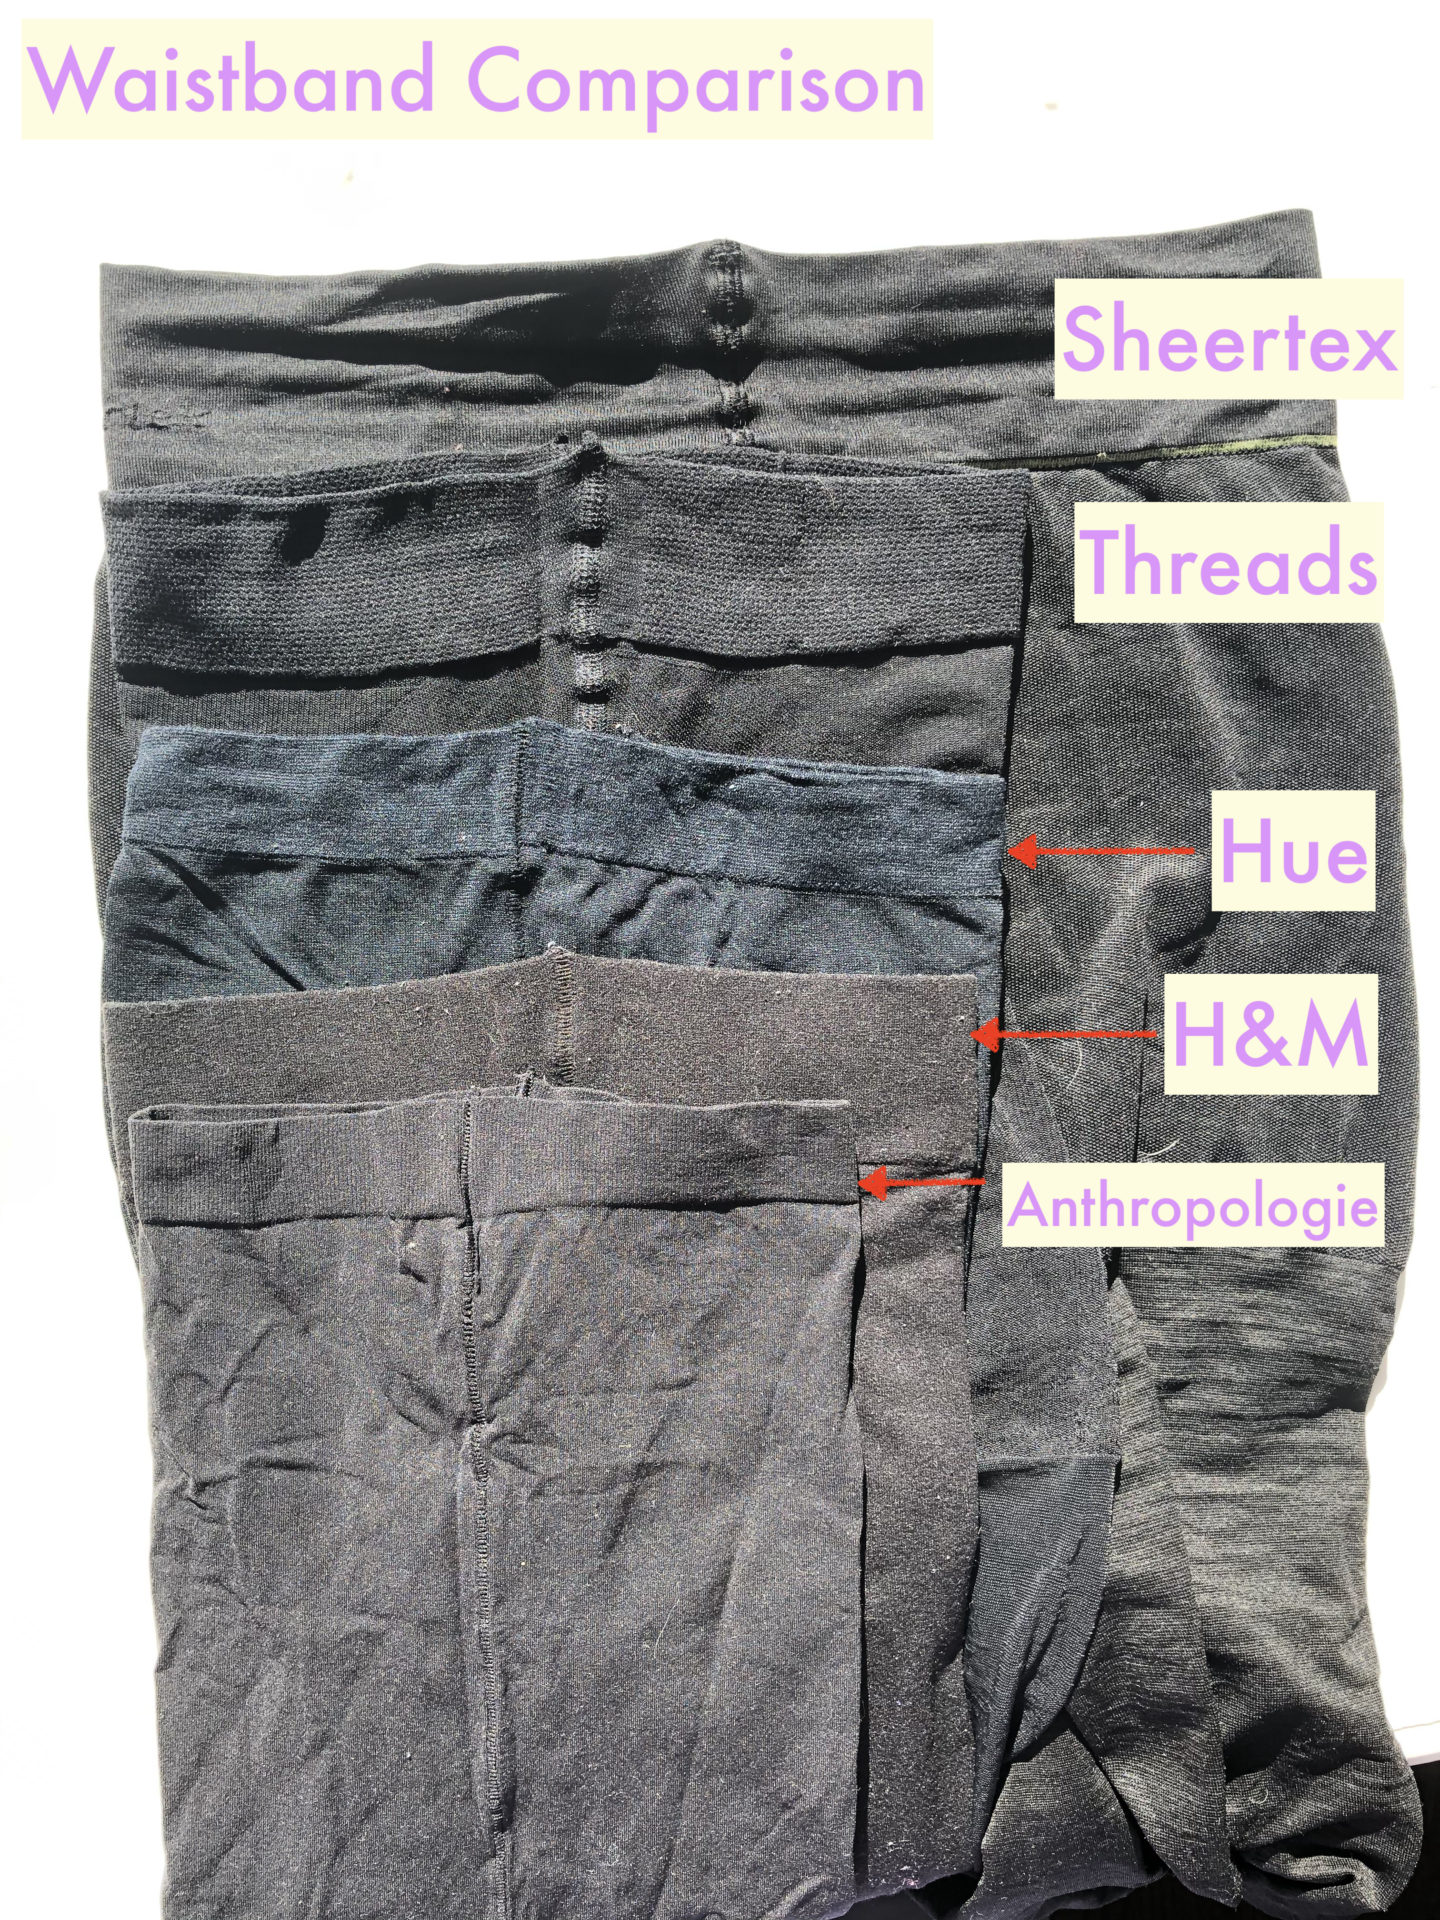 Are Sheertex worth it? How do they compare to other tights?